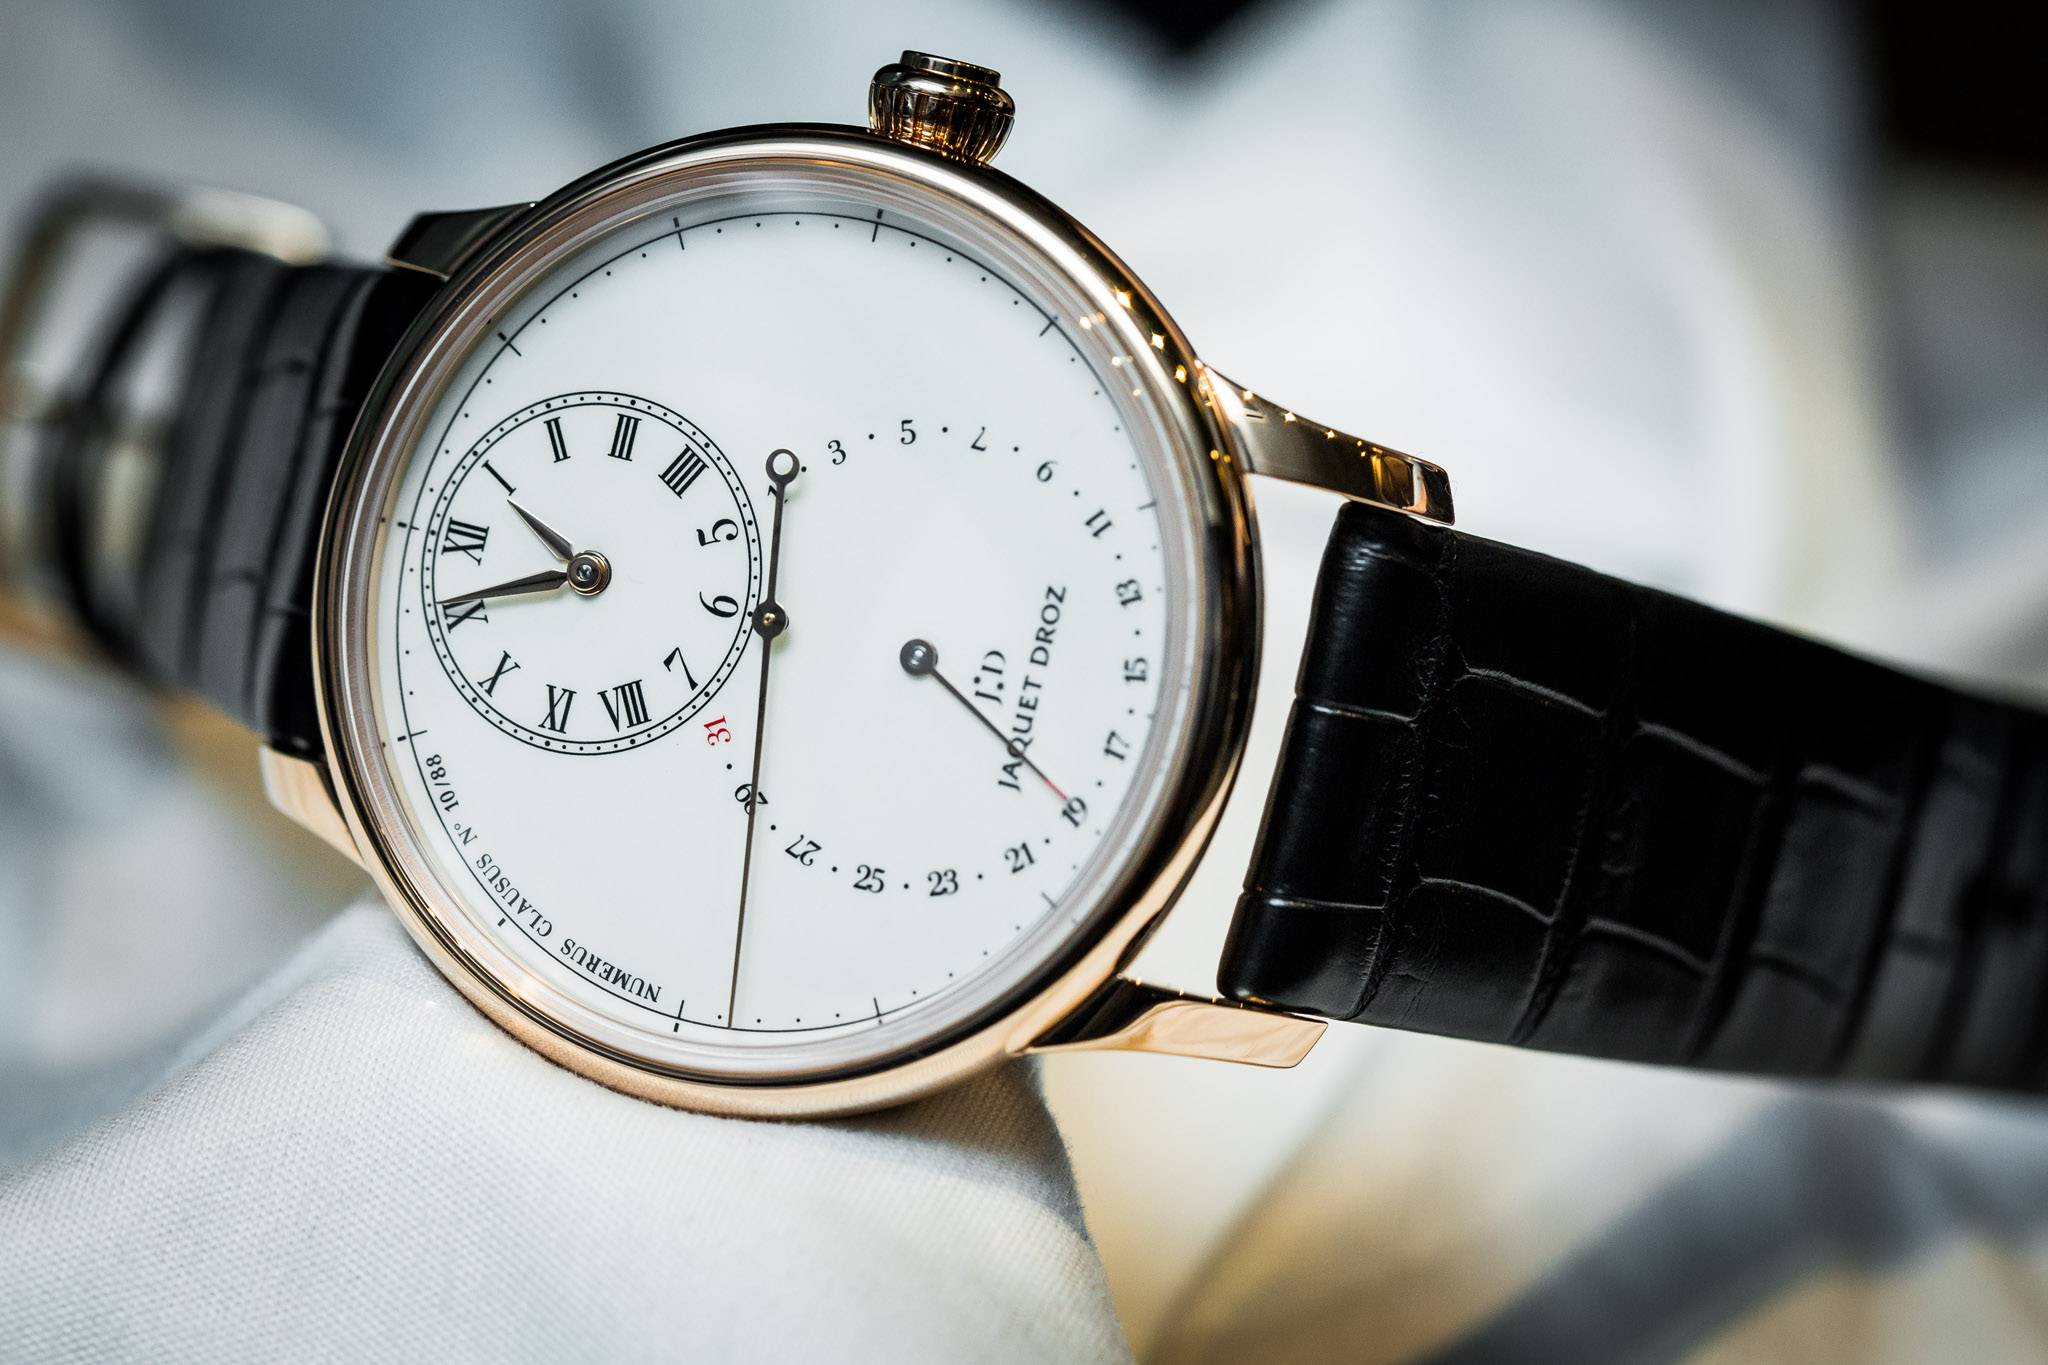 Jaquet Droz Grande Seconde Deadbeat Watch Baselworld 2015